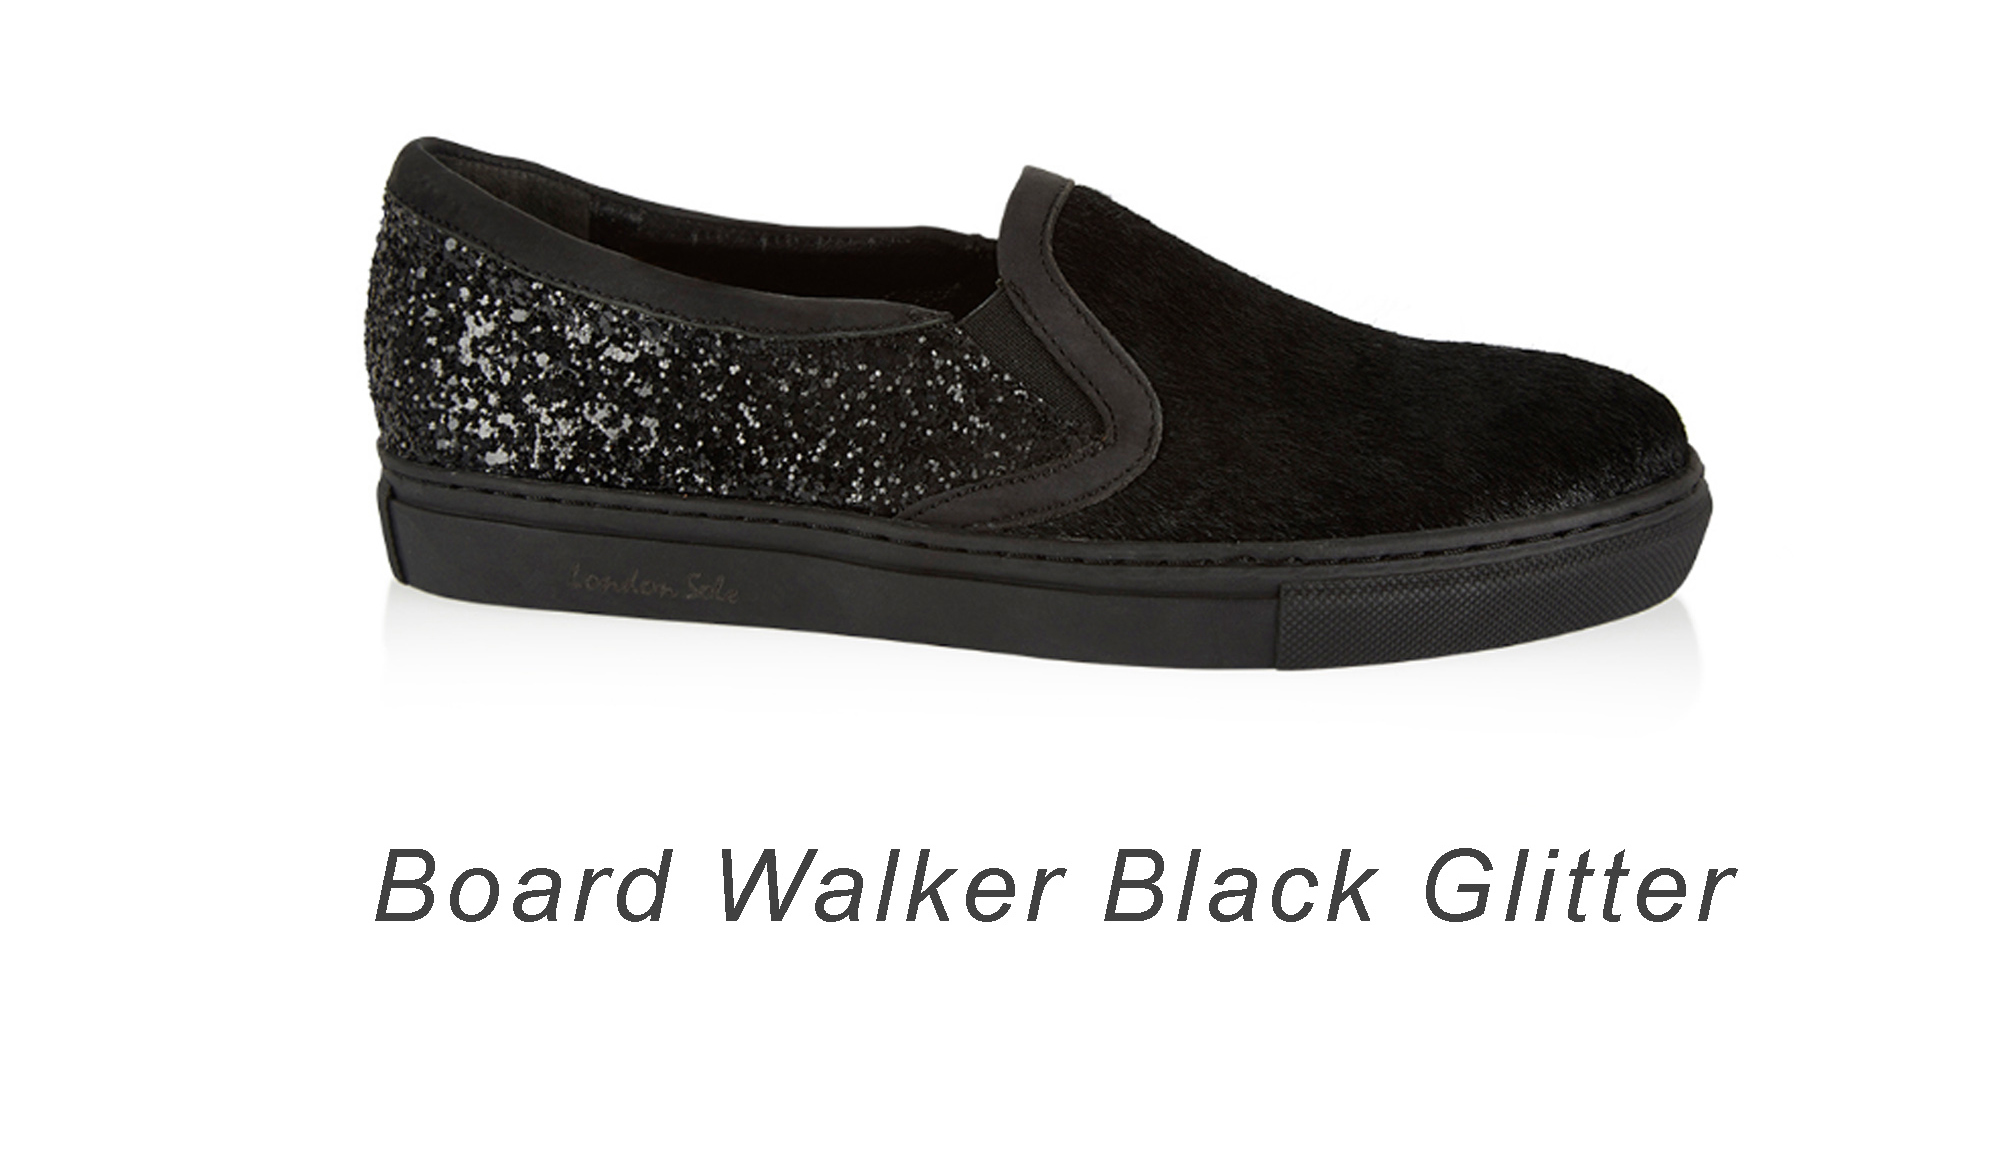 Board Walker Black Glitter